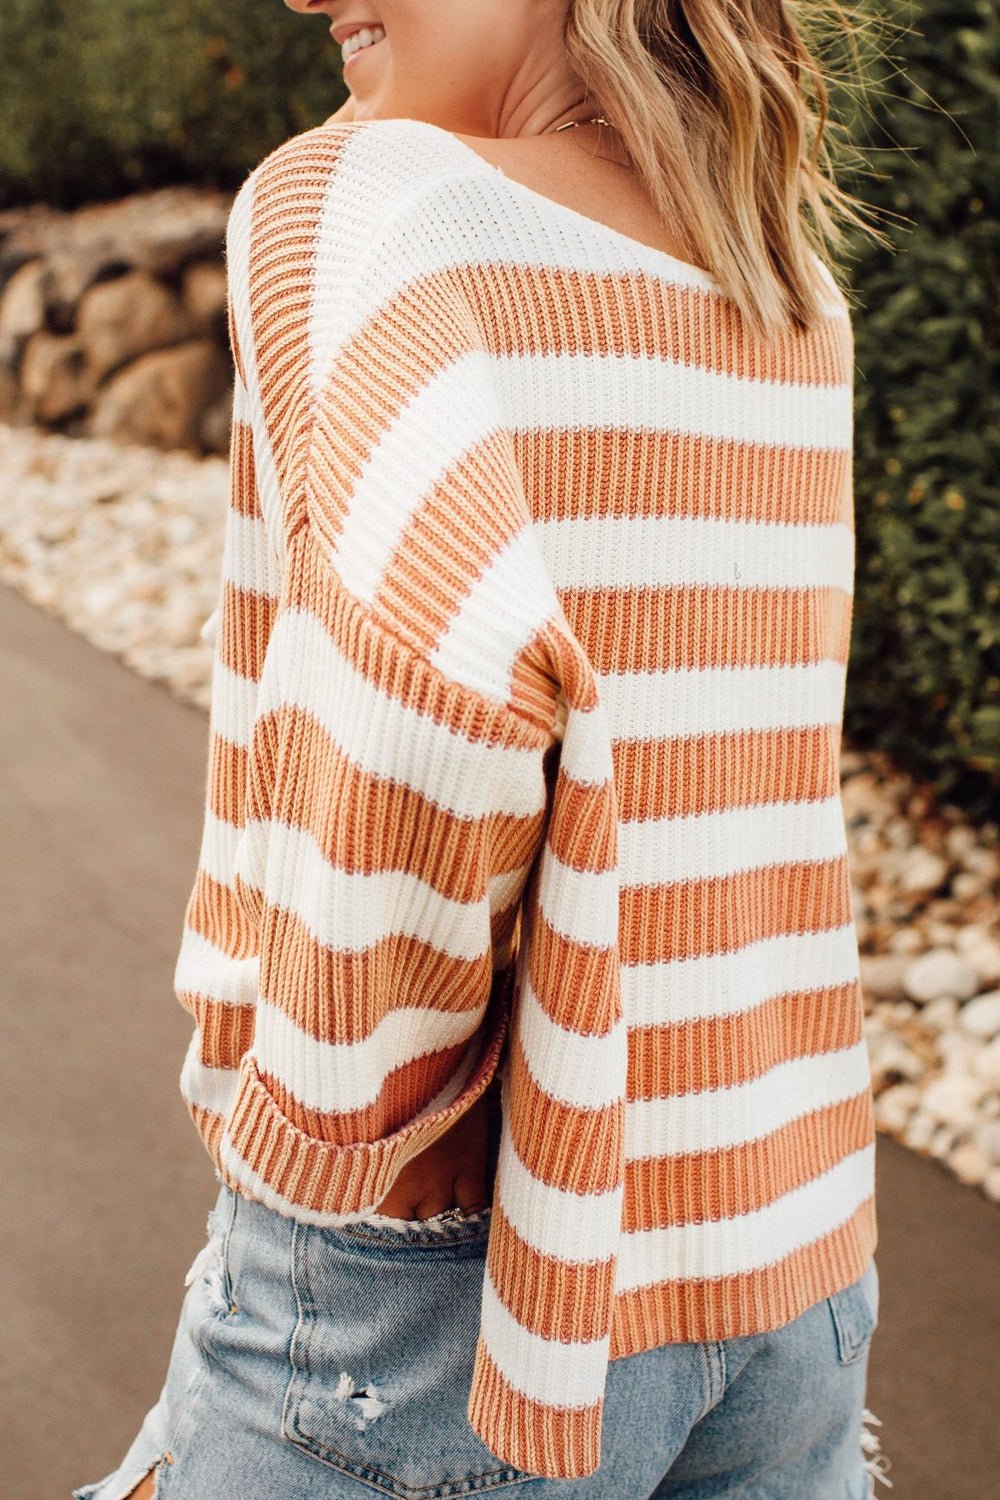 Peachy Mornings Sweater Inspired by Ashley from Twenties Girl Style